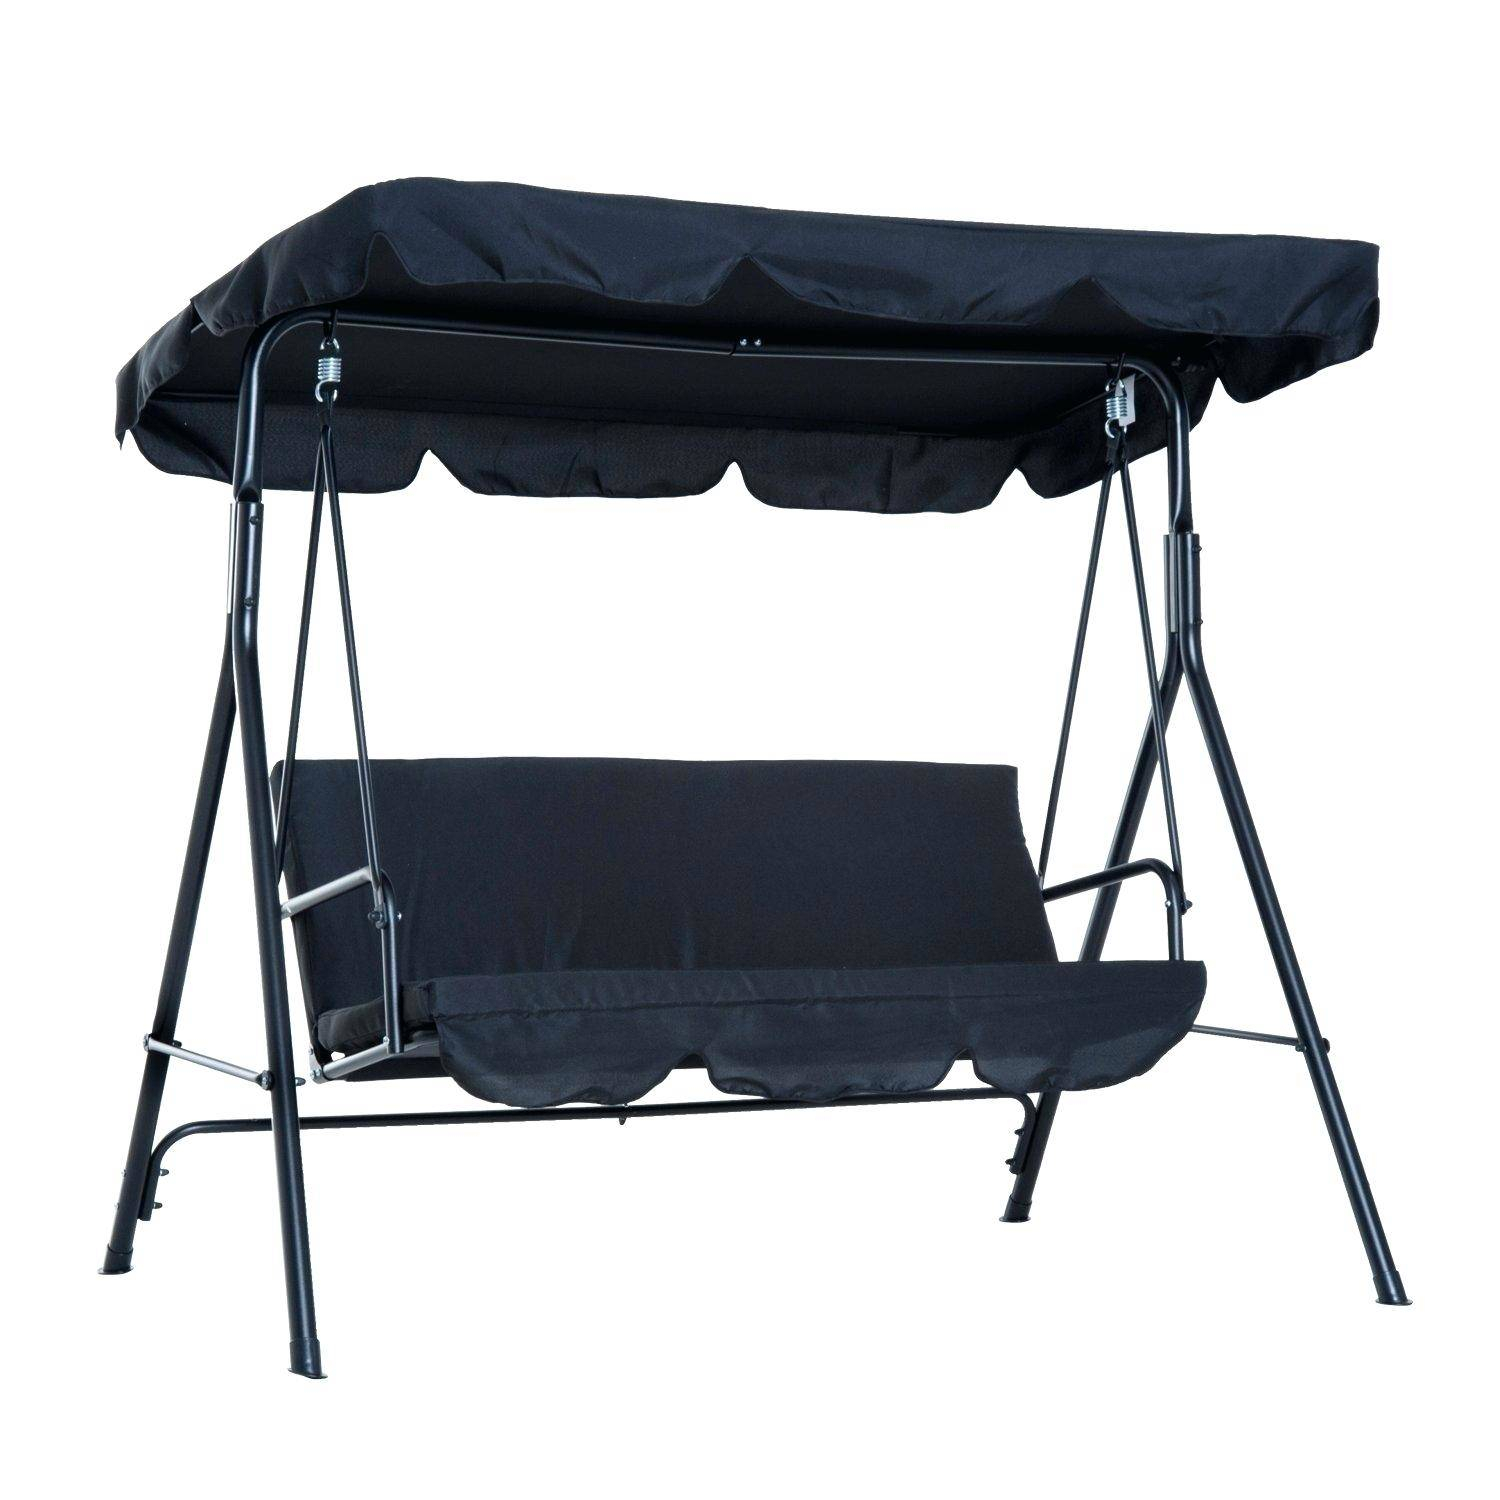 Extra Long Porch Swing Steel Fabric Outdoor Canopy Stand Intended For Daybed Porch Swings With Stand (View 14 of 25)